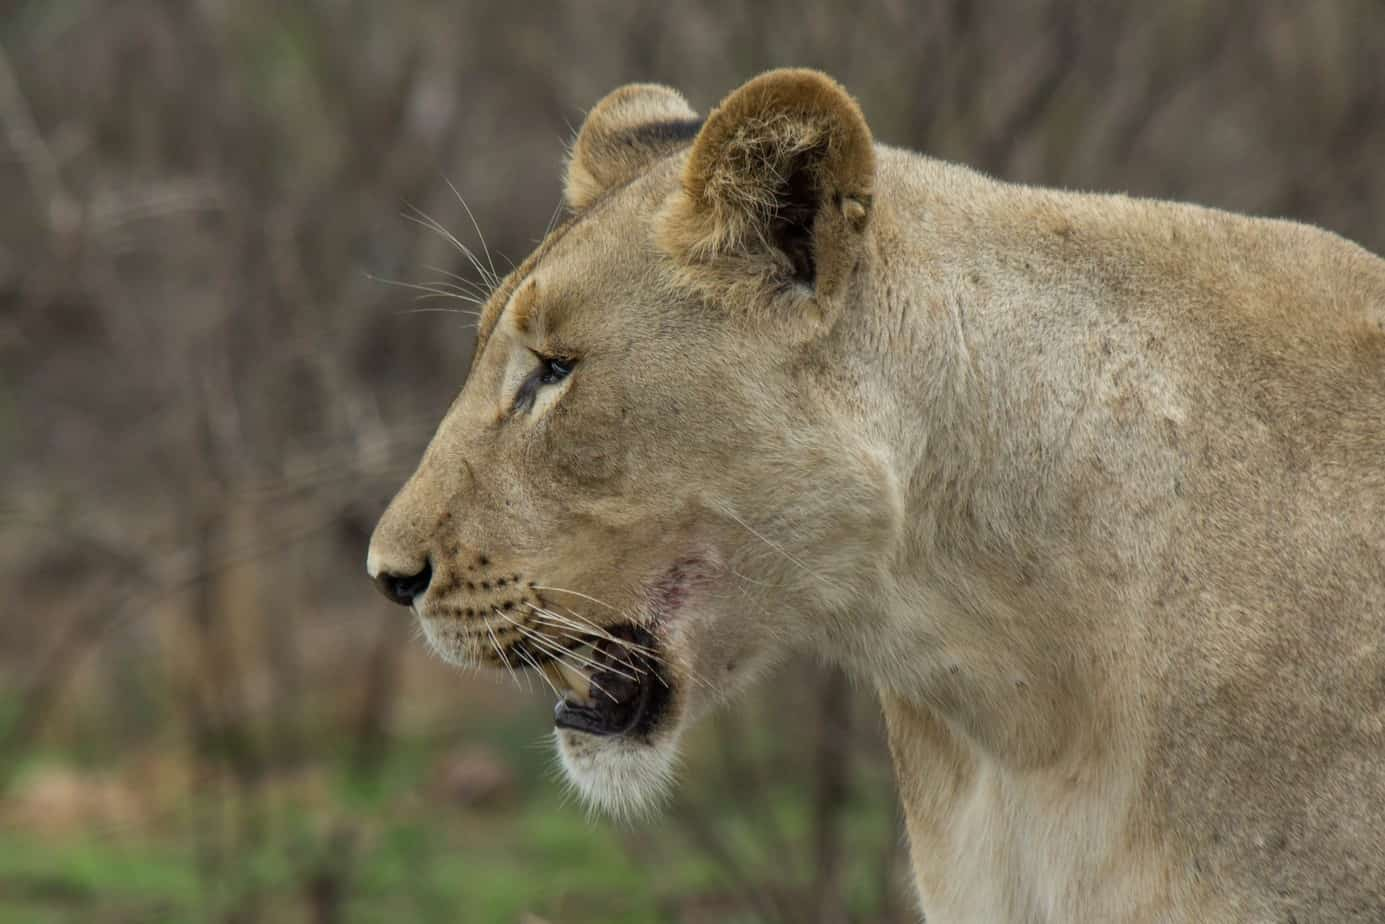 Lion @ Munyawana Game Reserve. Photo: Håvard Rosenlund